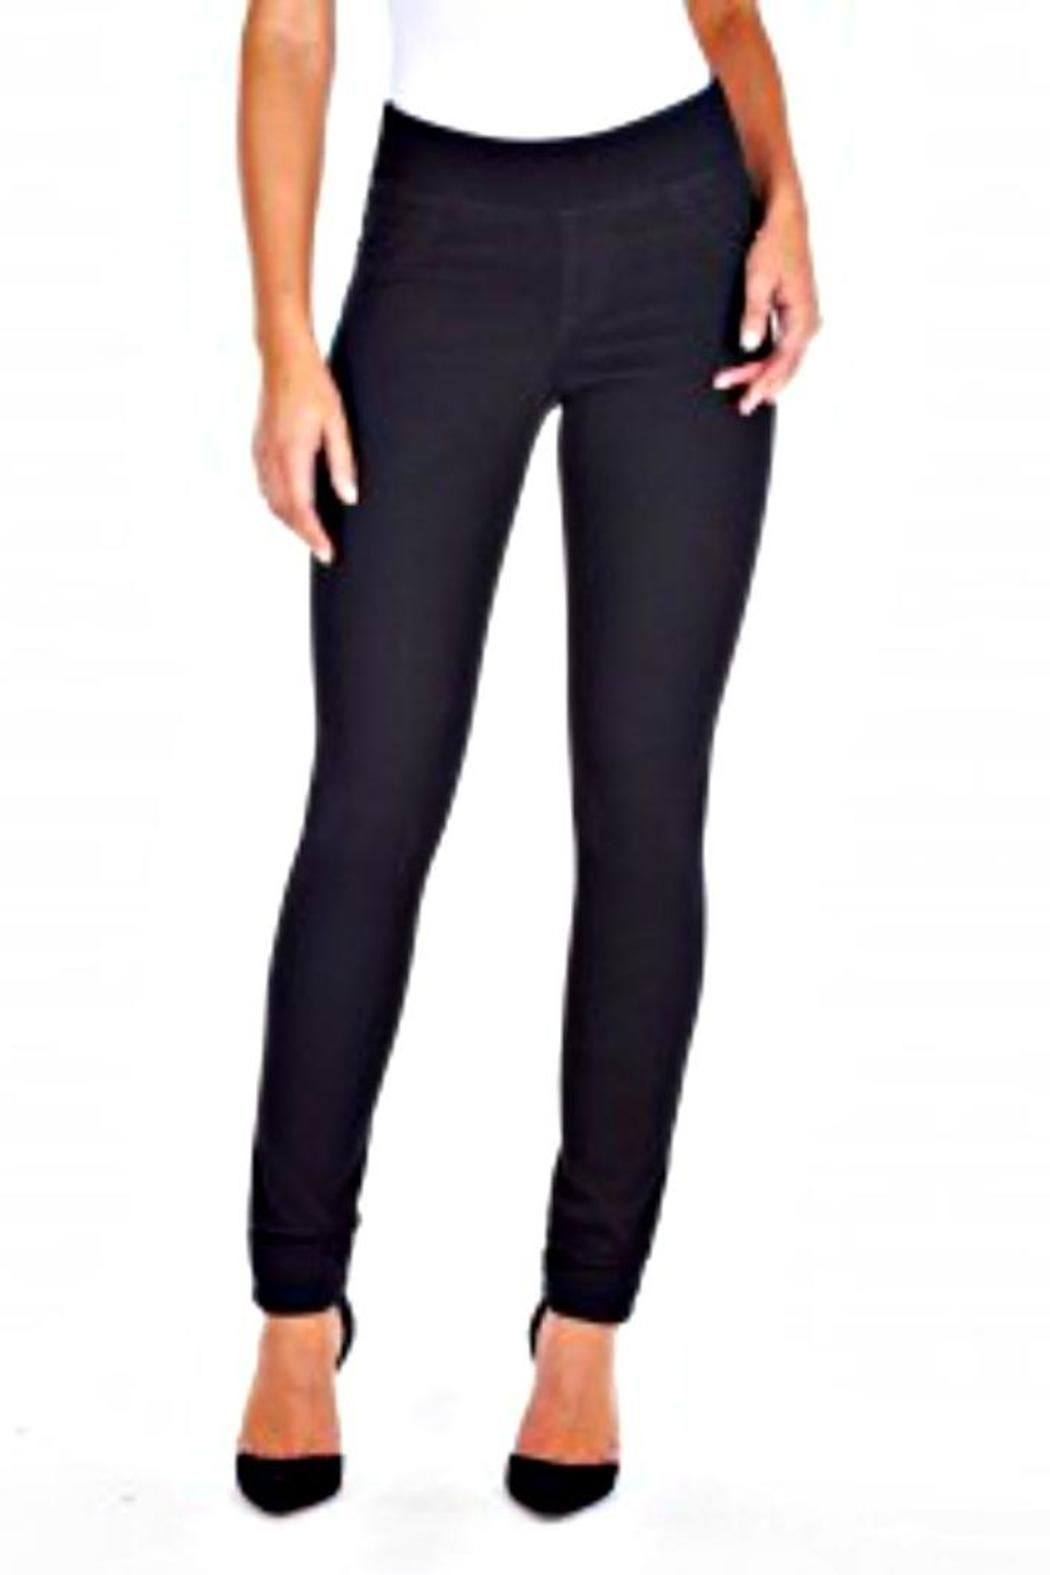 3eede050059 These jeggings (jean leggings) have a wide waist, two pockets in the back,  and a slim fit. The denim fabric is soft and has a nice weight and a great  ...